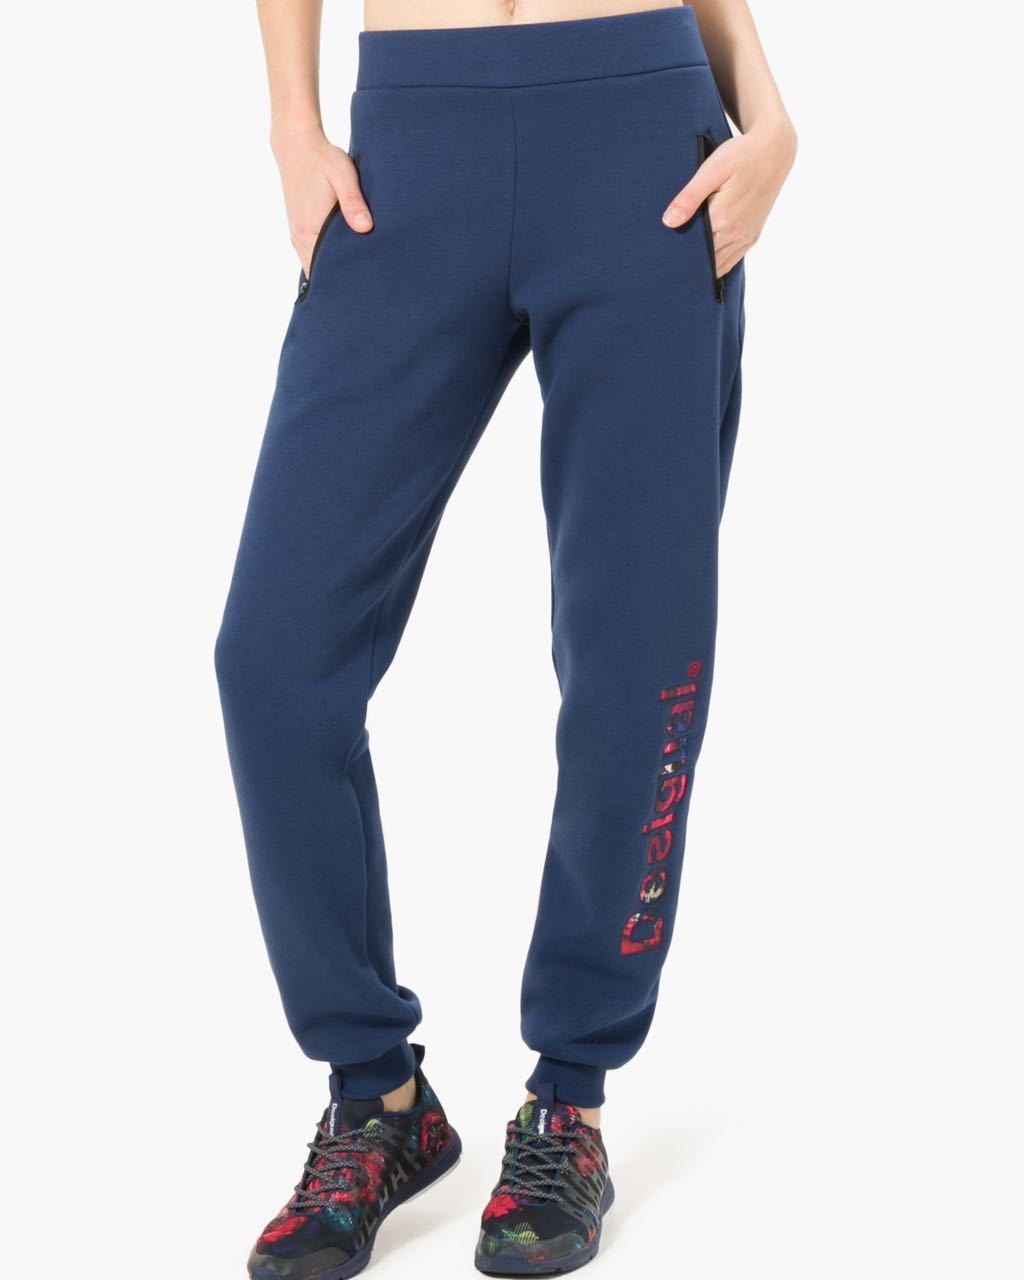 17WPRK20_5149 Desigual Pant Training Interlock Buy Online